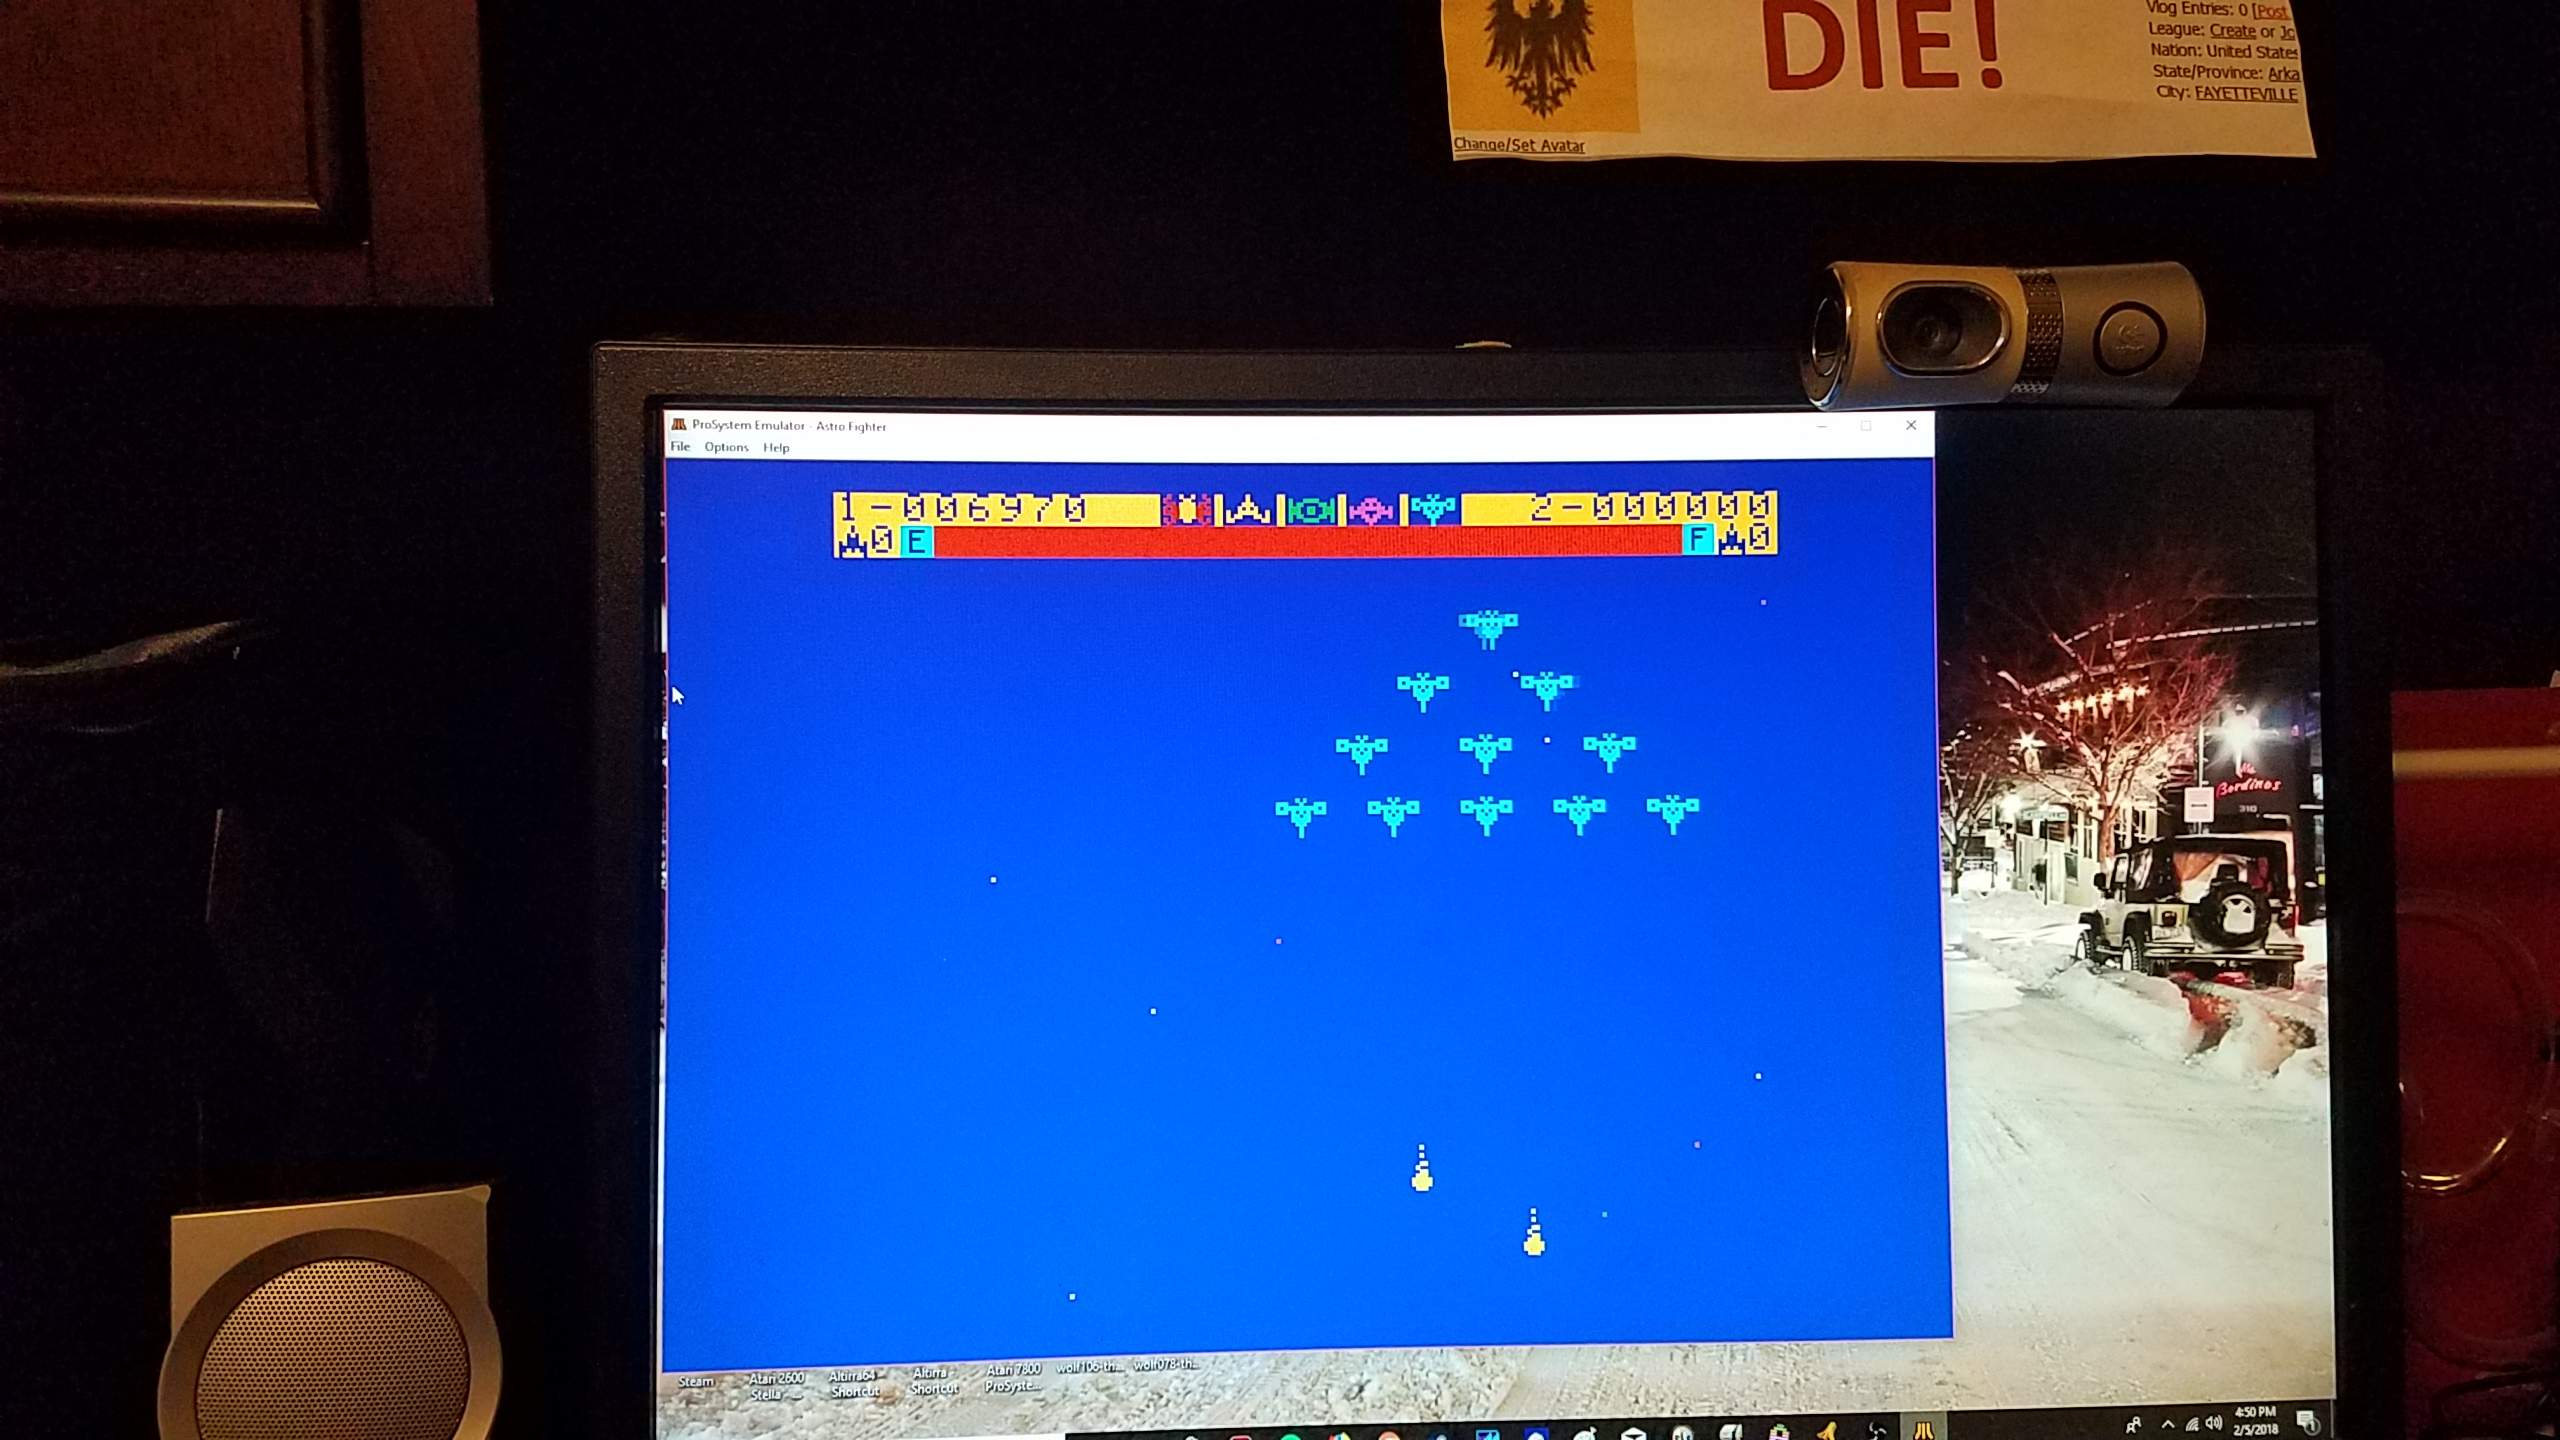 MikeDietrich: Astro Fighter [Easy / 3 Lives] (Atari 7800 Emulated) 6,970 points on 2018-02-05 16:54:08